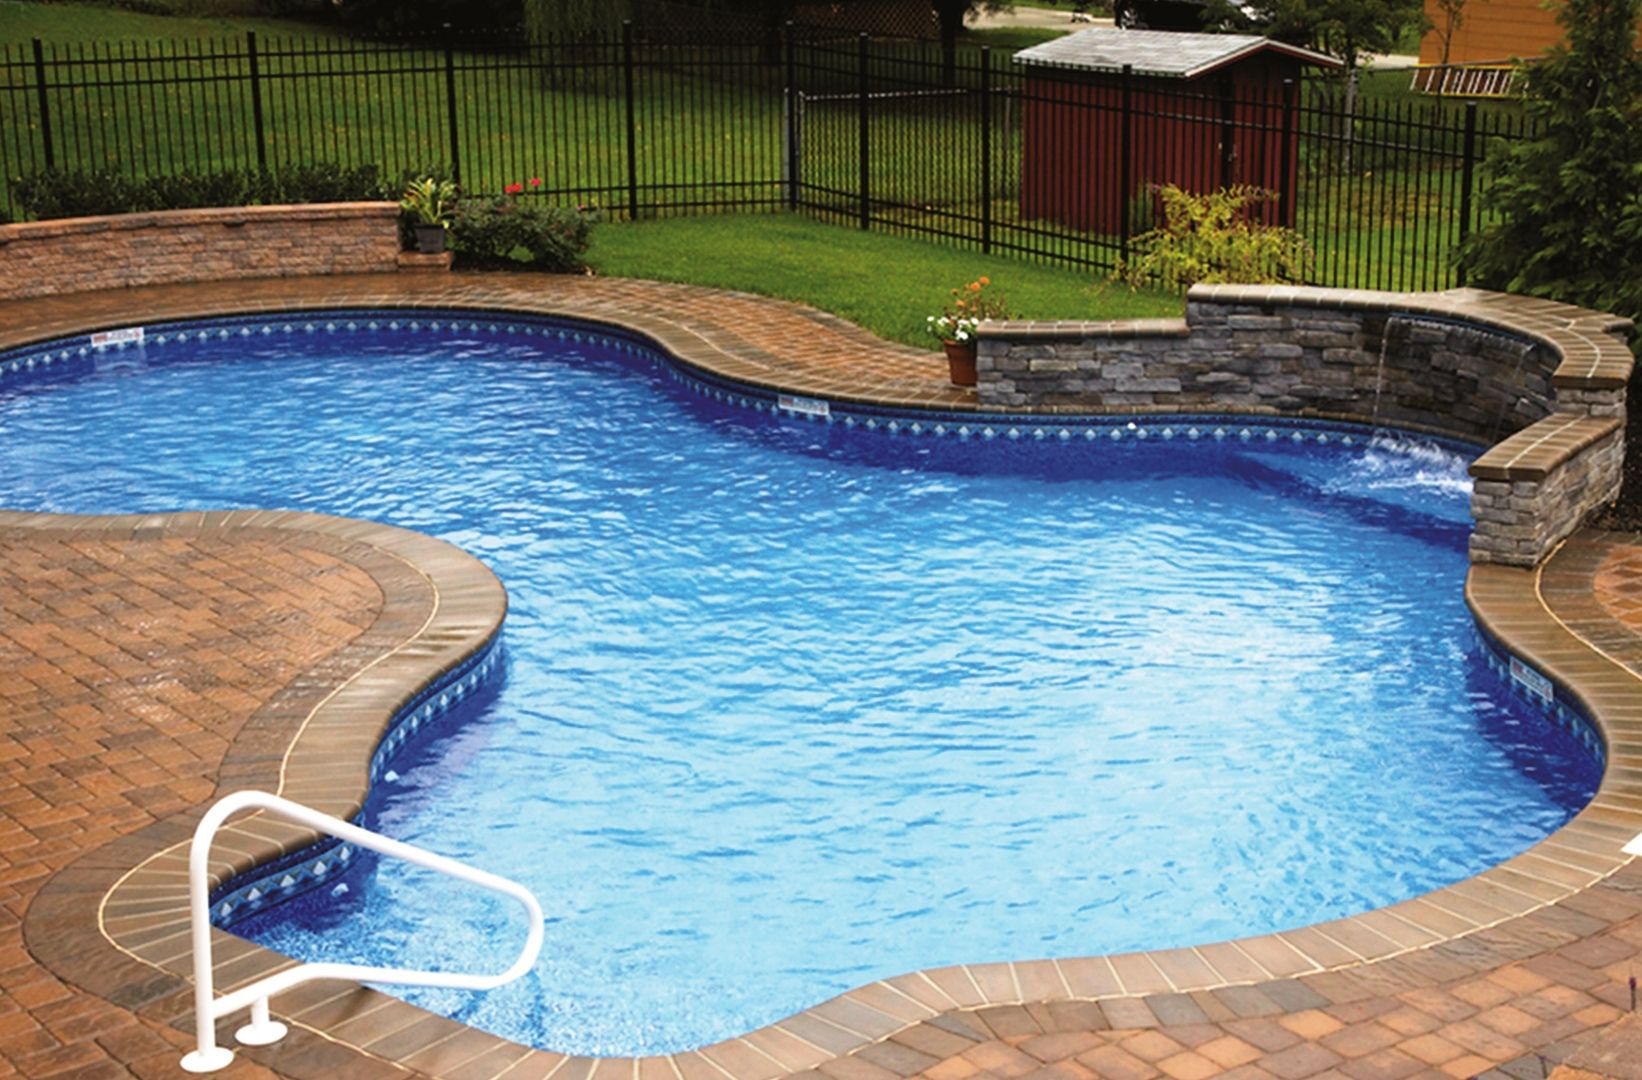 Pool Paver Ideas pool deck by unilock with richcliff paver and steps Back Yard Swimming Pool Ideas